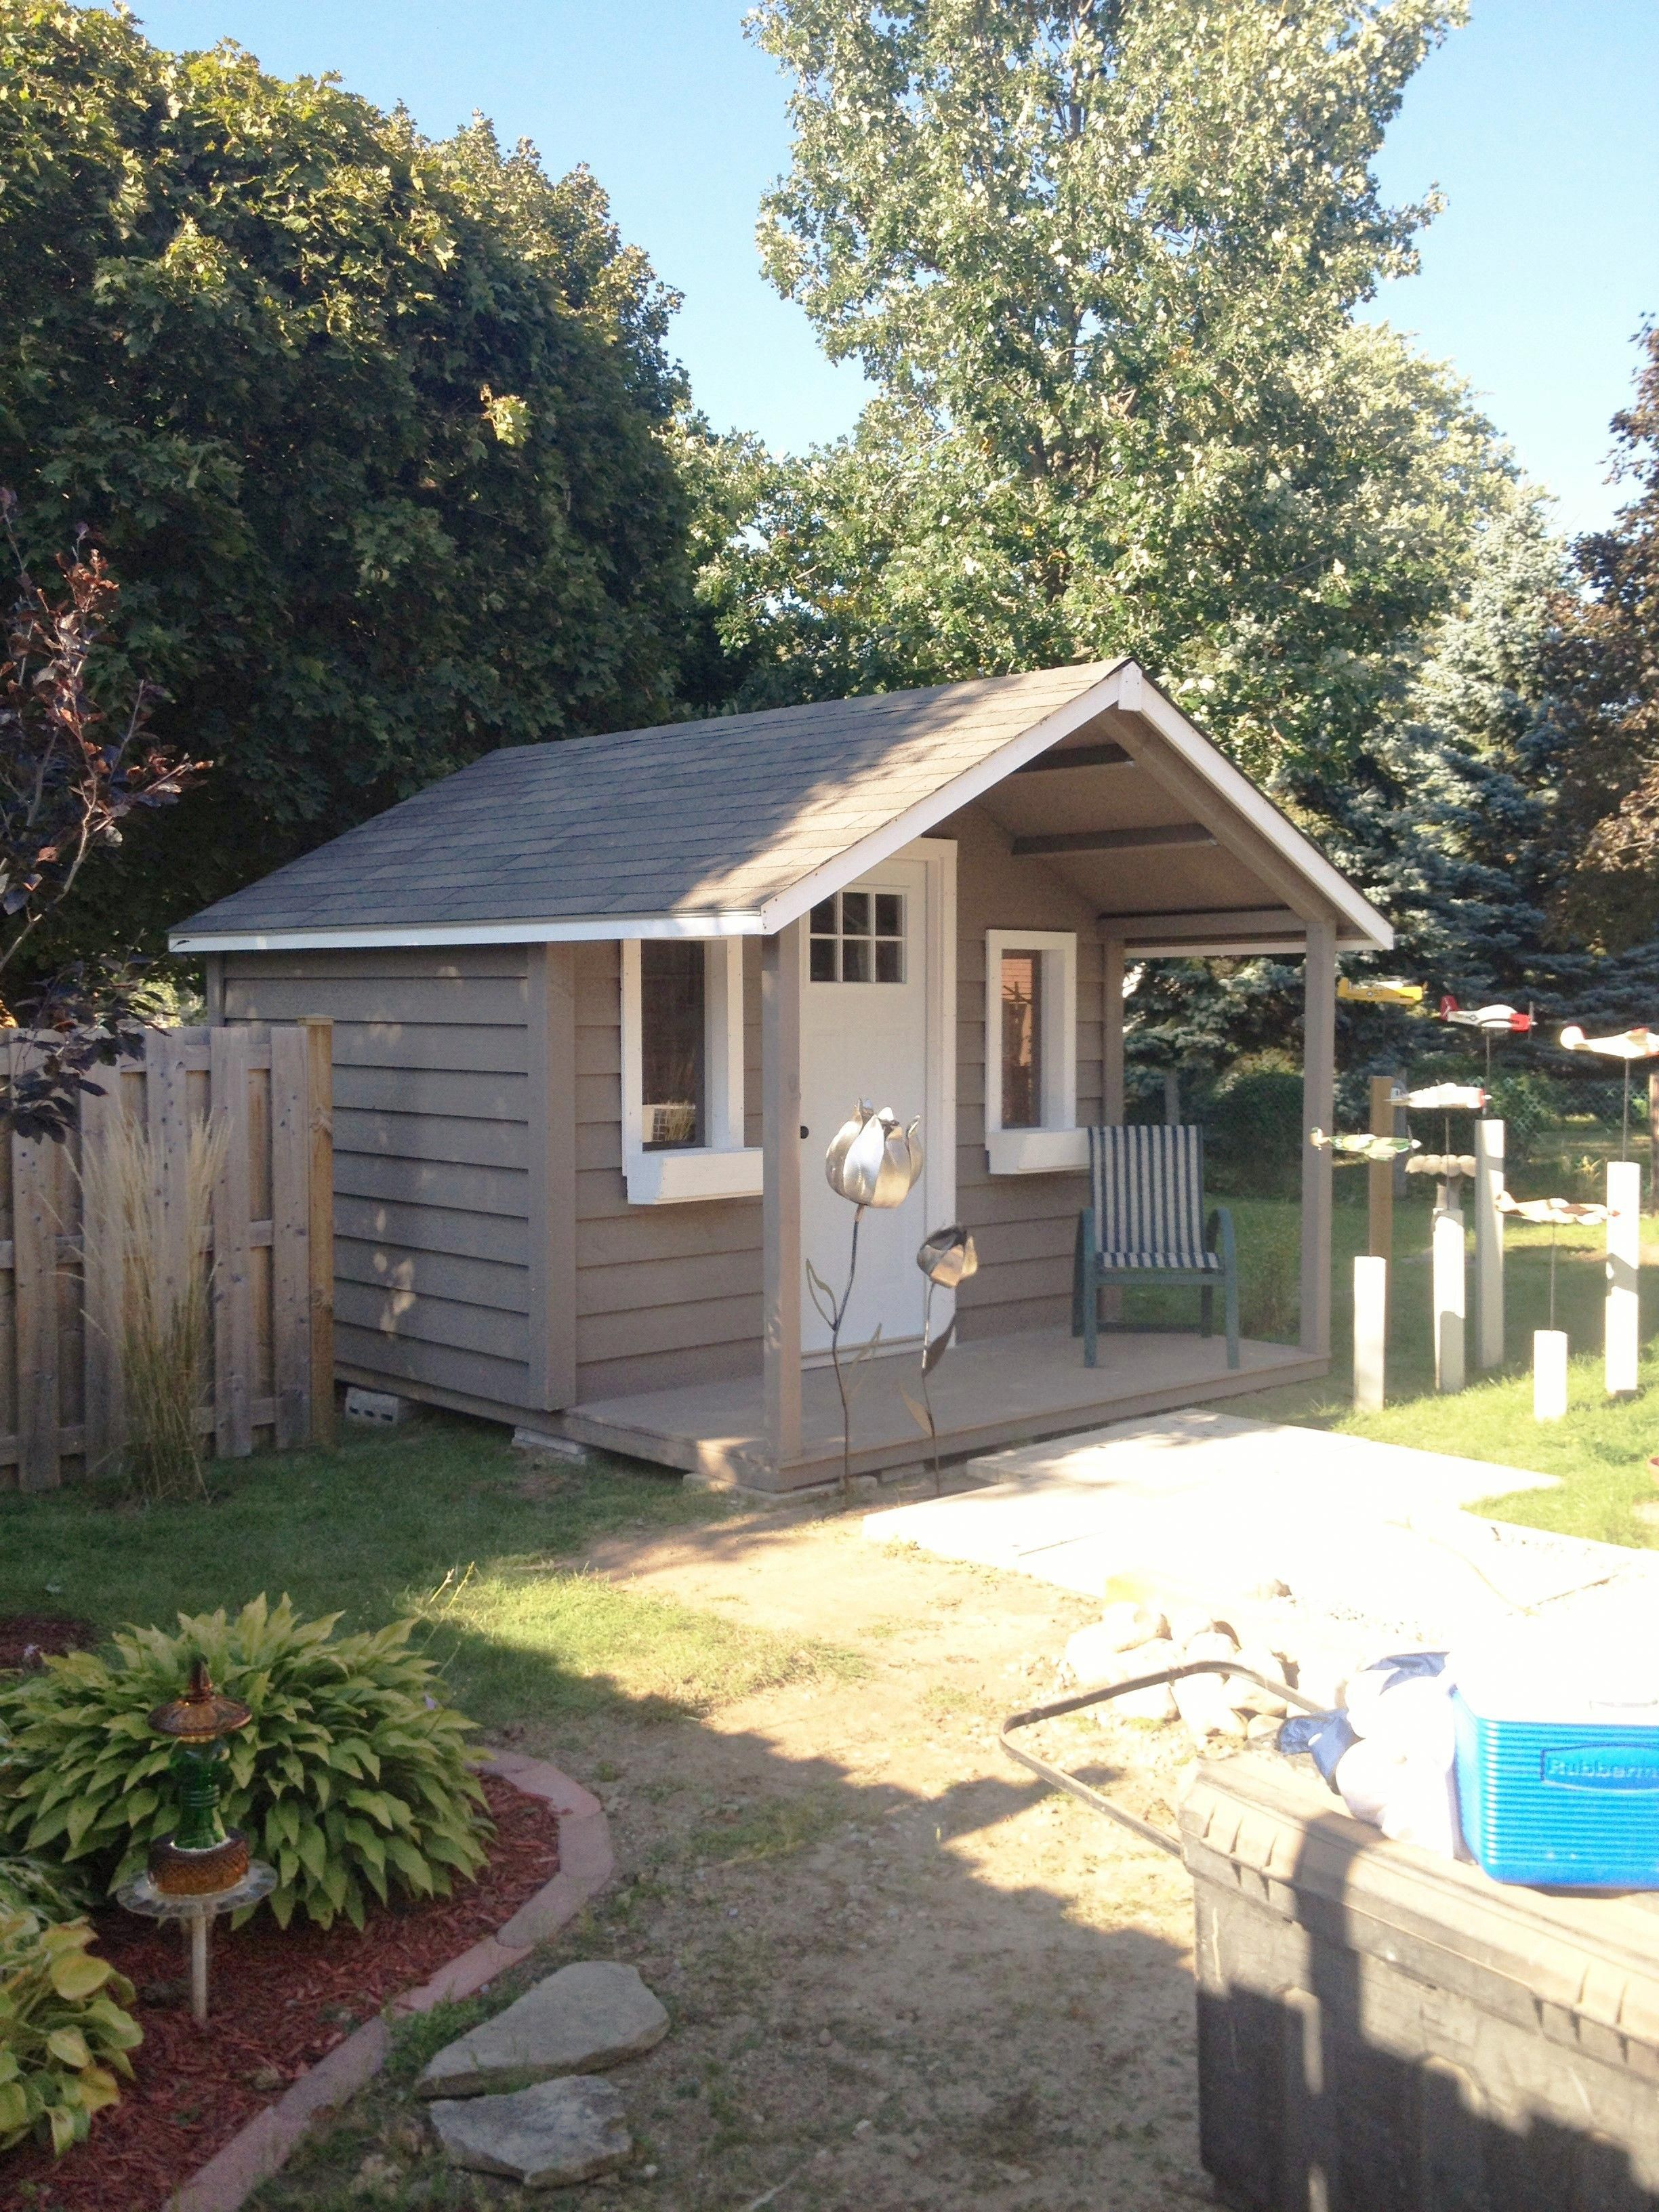 10x10 Medium Classic With 4 Foot Gable Porch Gardenshedideas Backyard Sheds Backyard Shed Shed With Porch